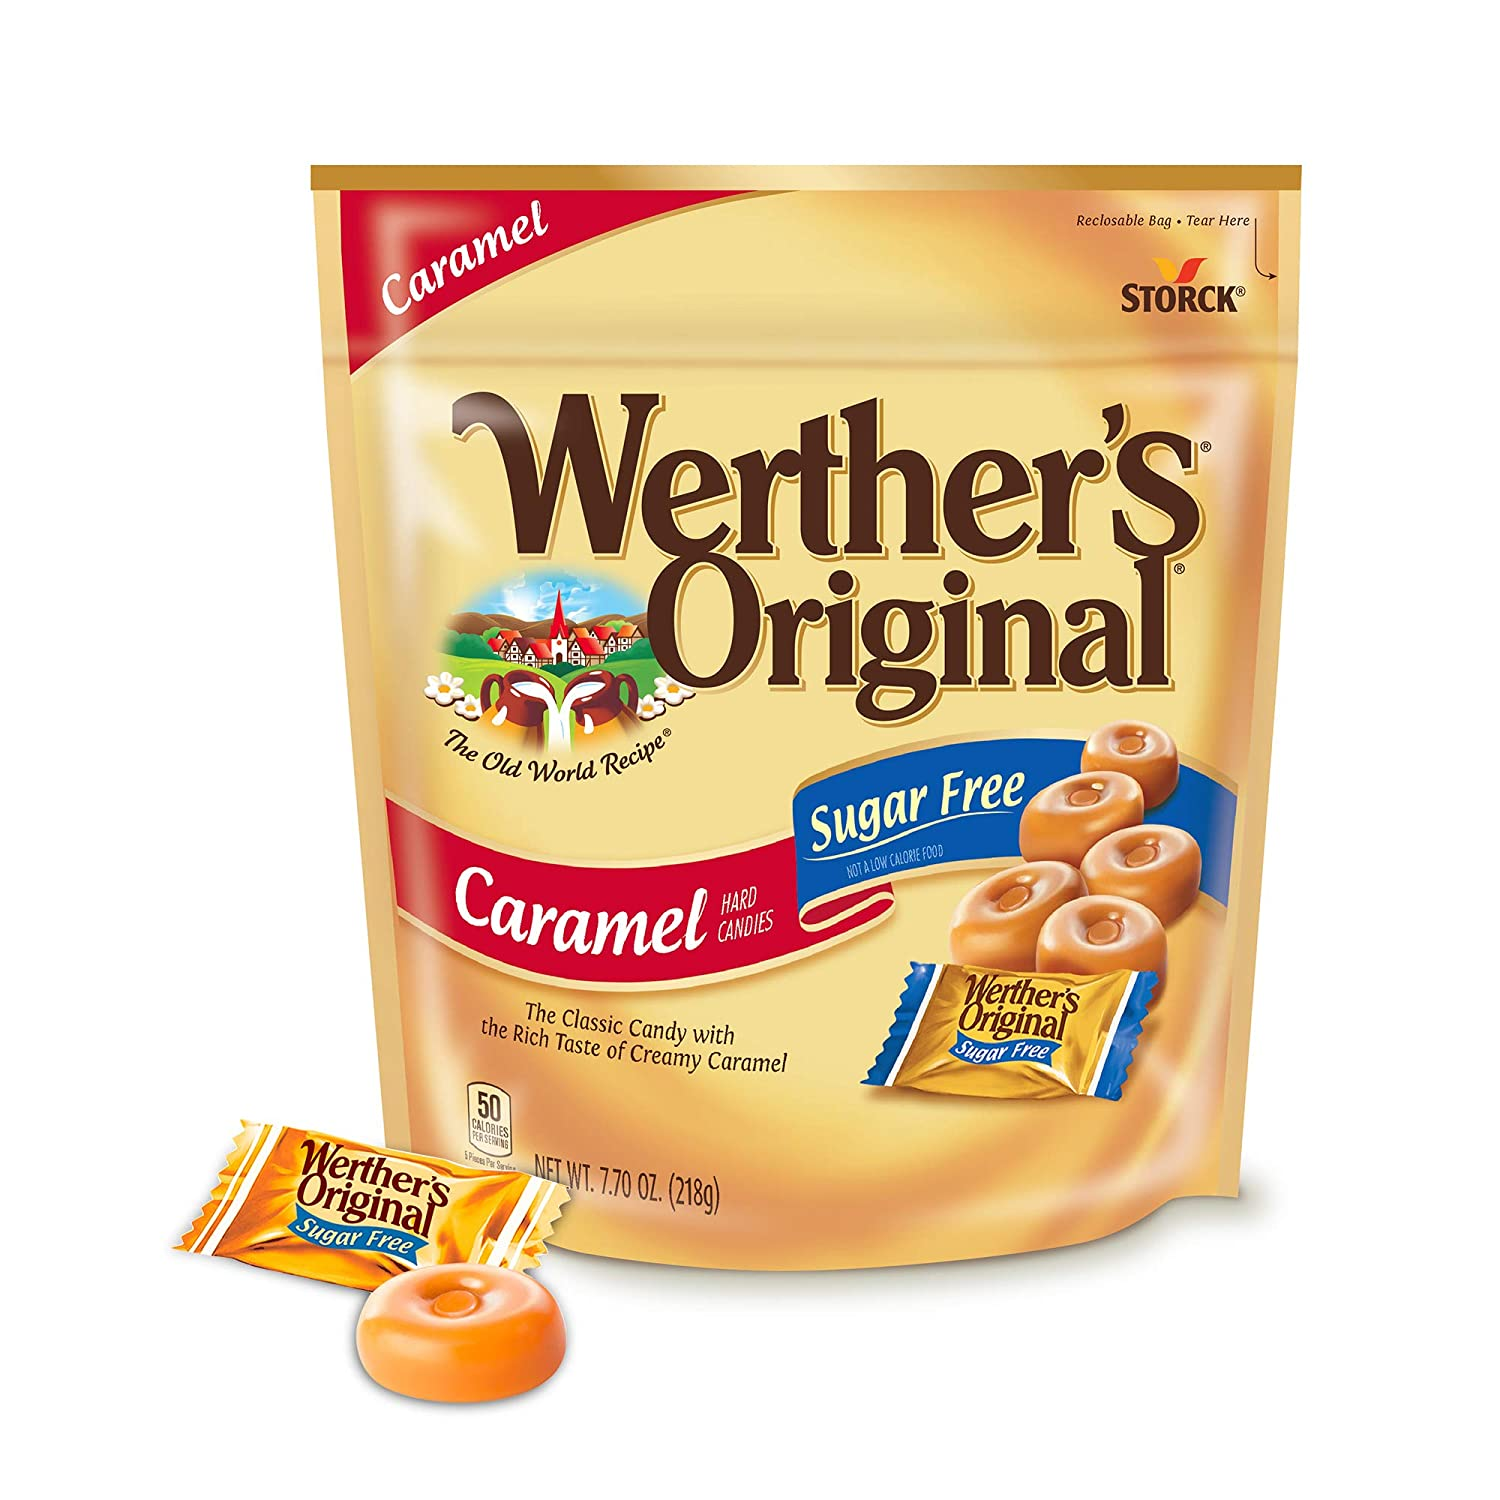 WERTHER'S ORIGINAL Sugar Free Caramel Hard Candy, Individually Wrapped Candy, 7.7 Ounce Bag